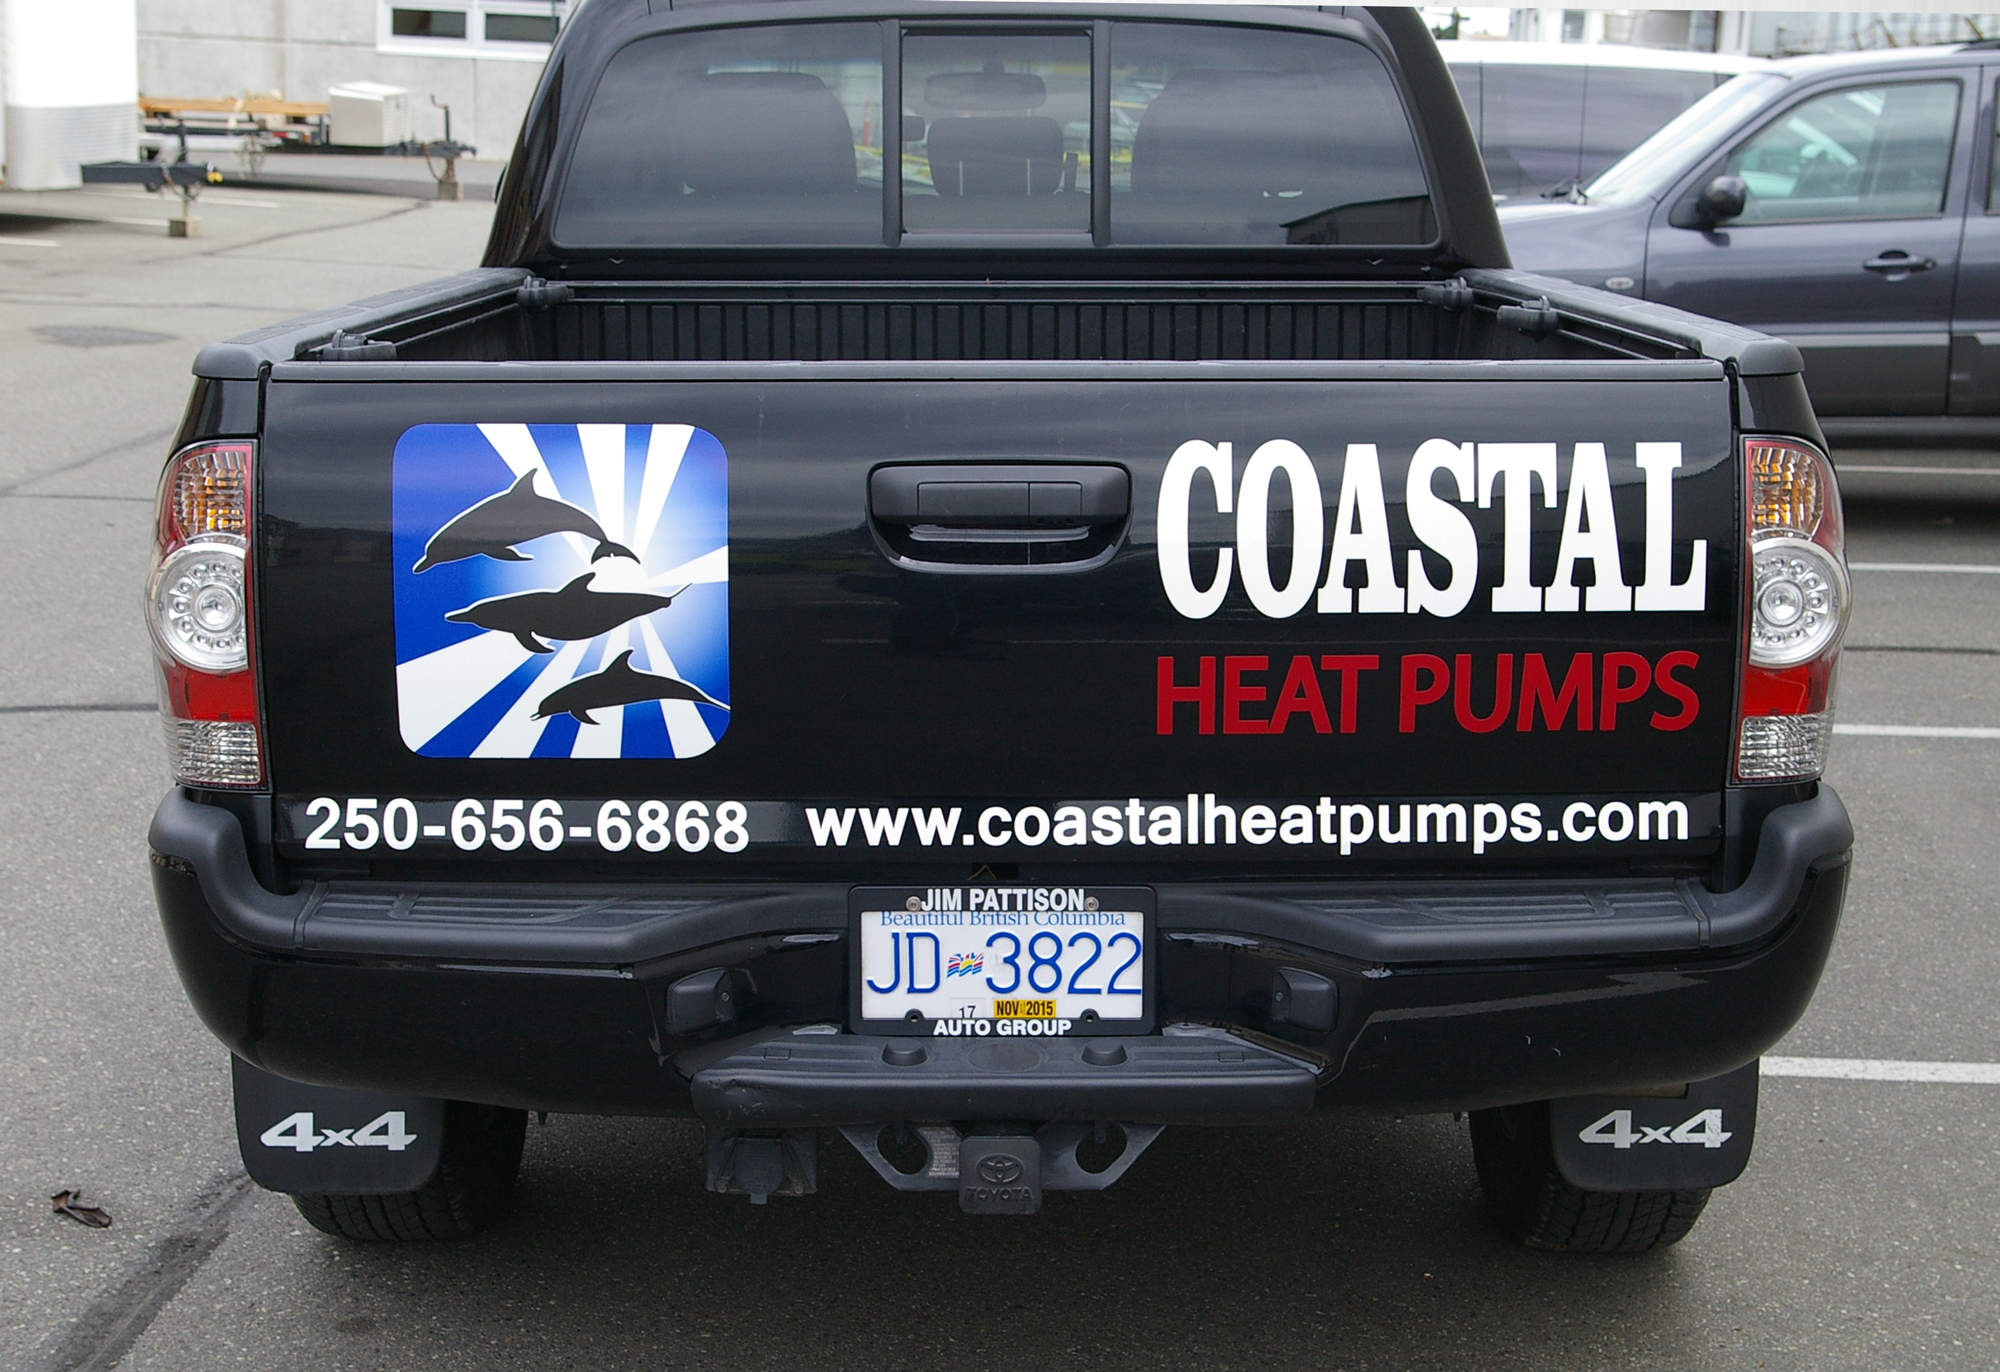 Coastal_Heat_Pumps1